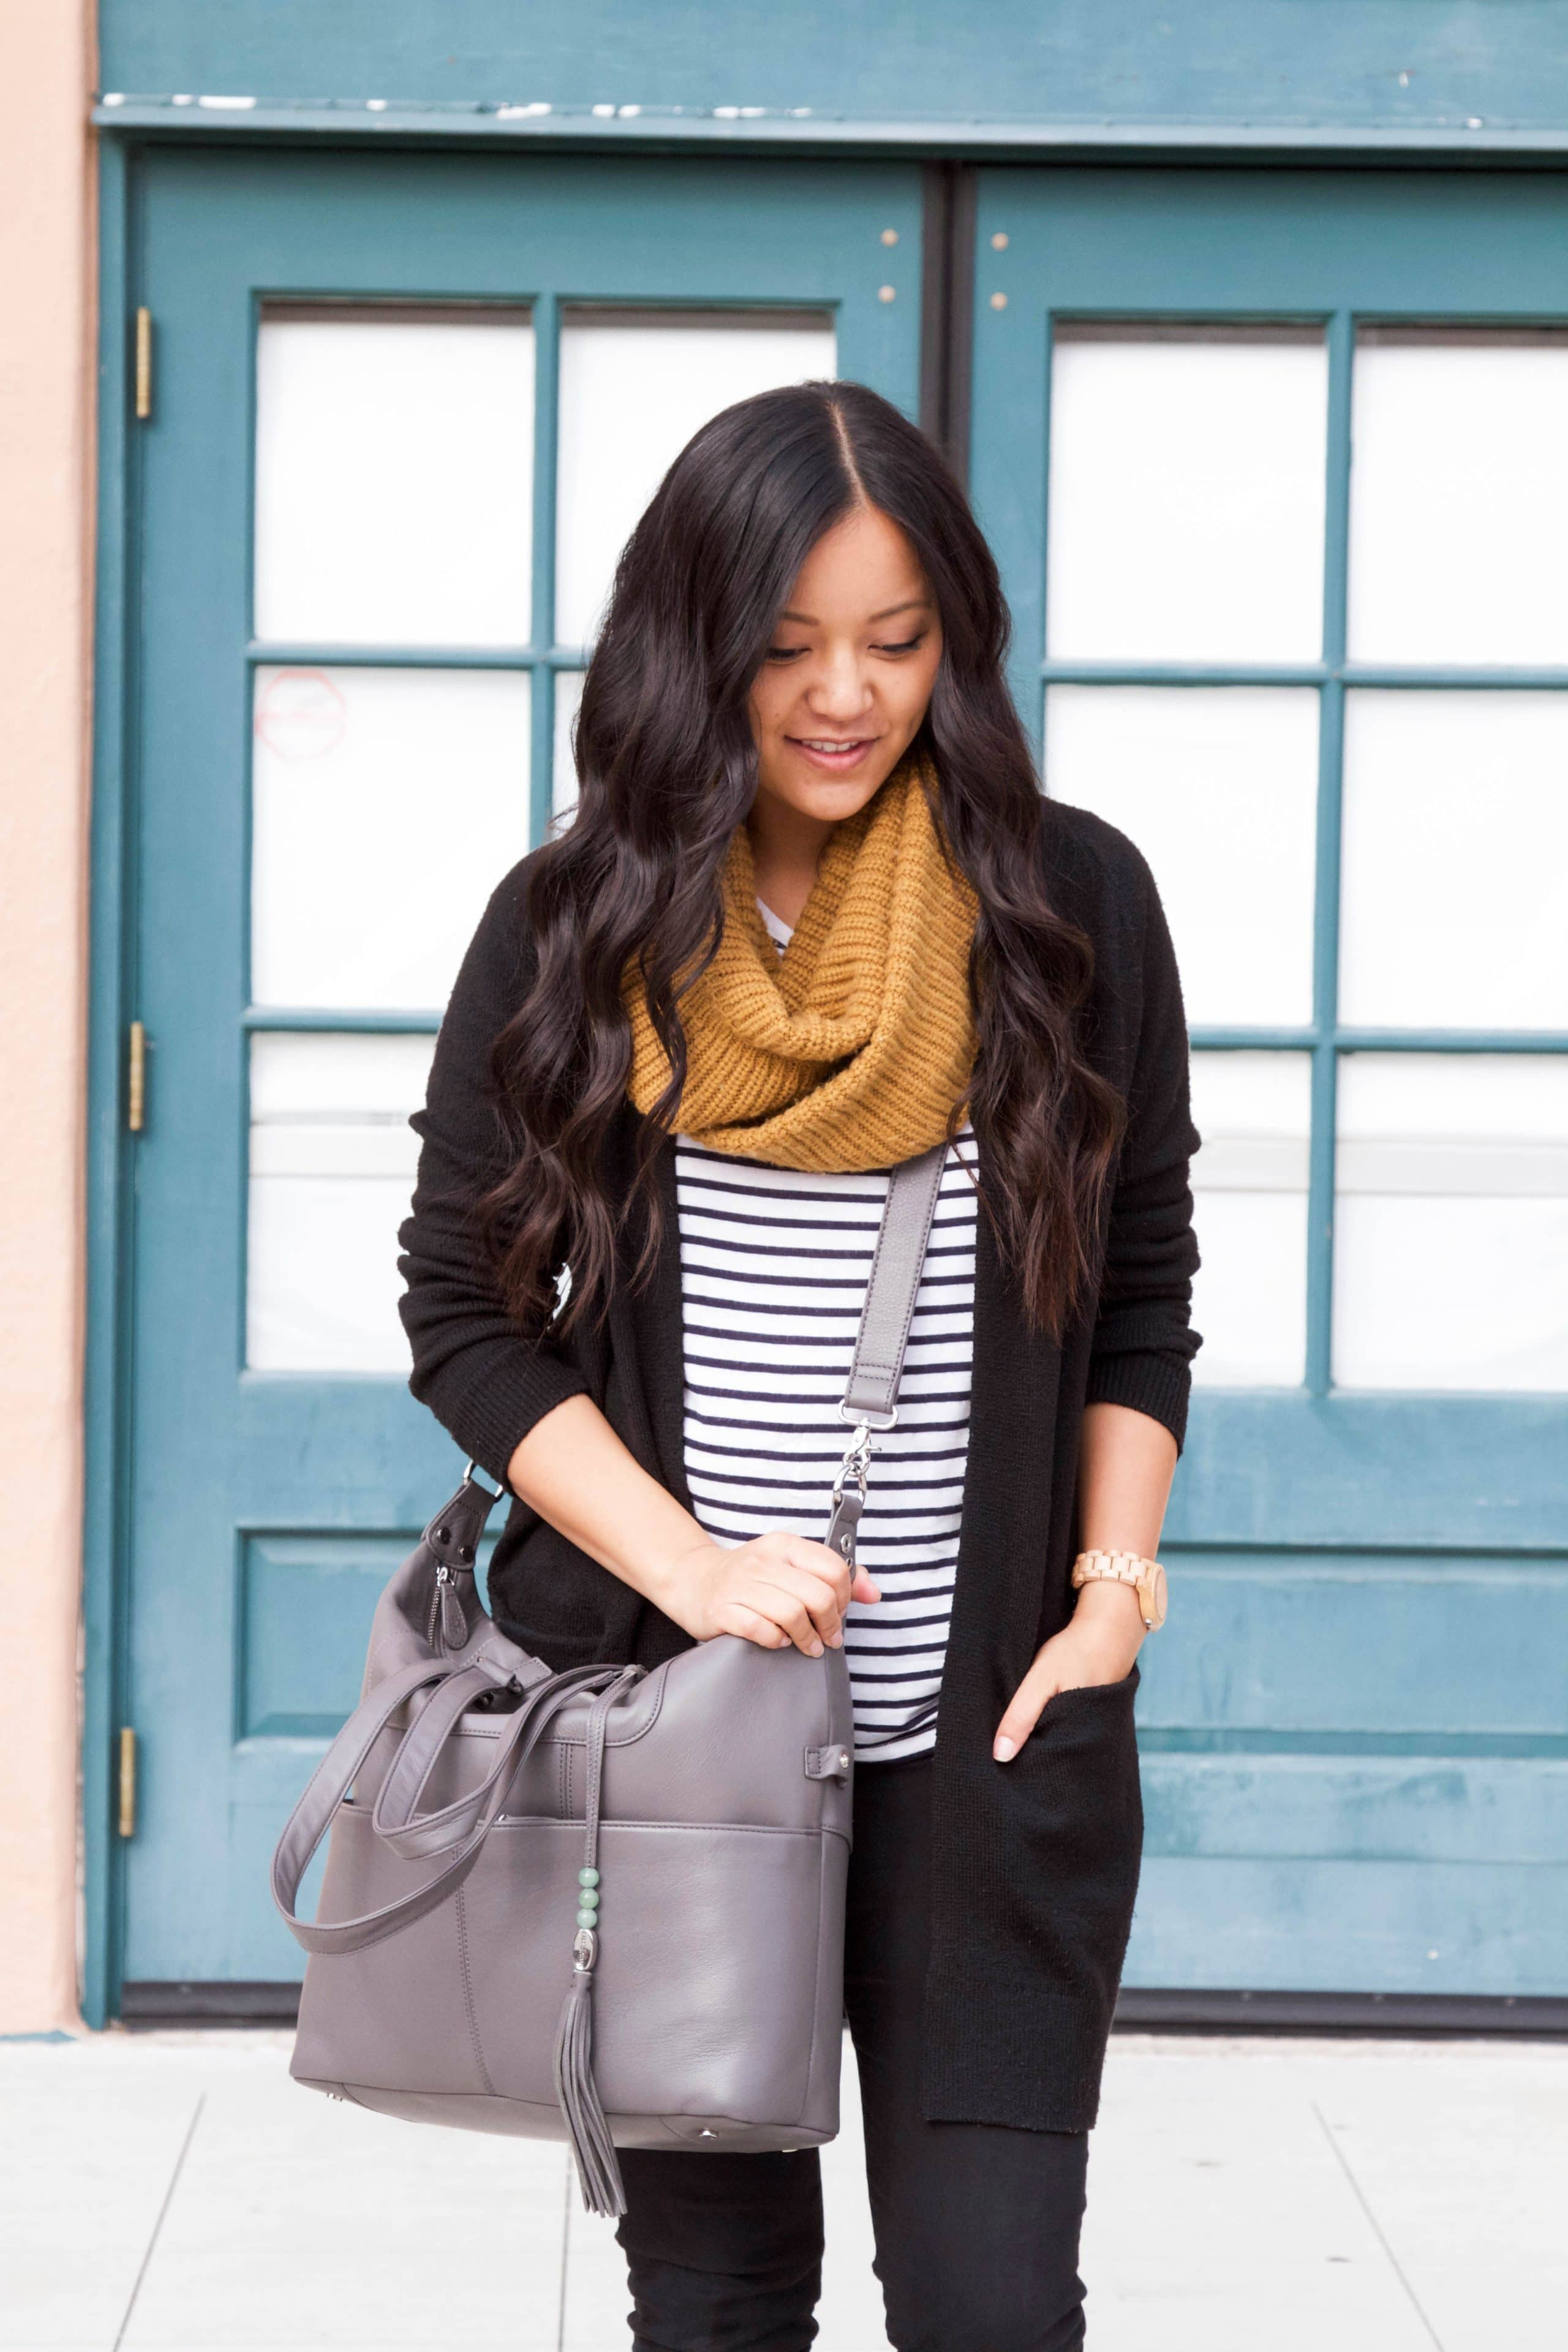 Travel Outfit: Black Cardigan + Striped Tee + Scarf + Gray Tote + Black Jeans